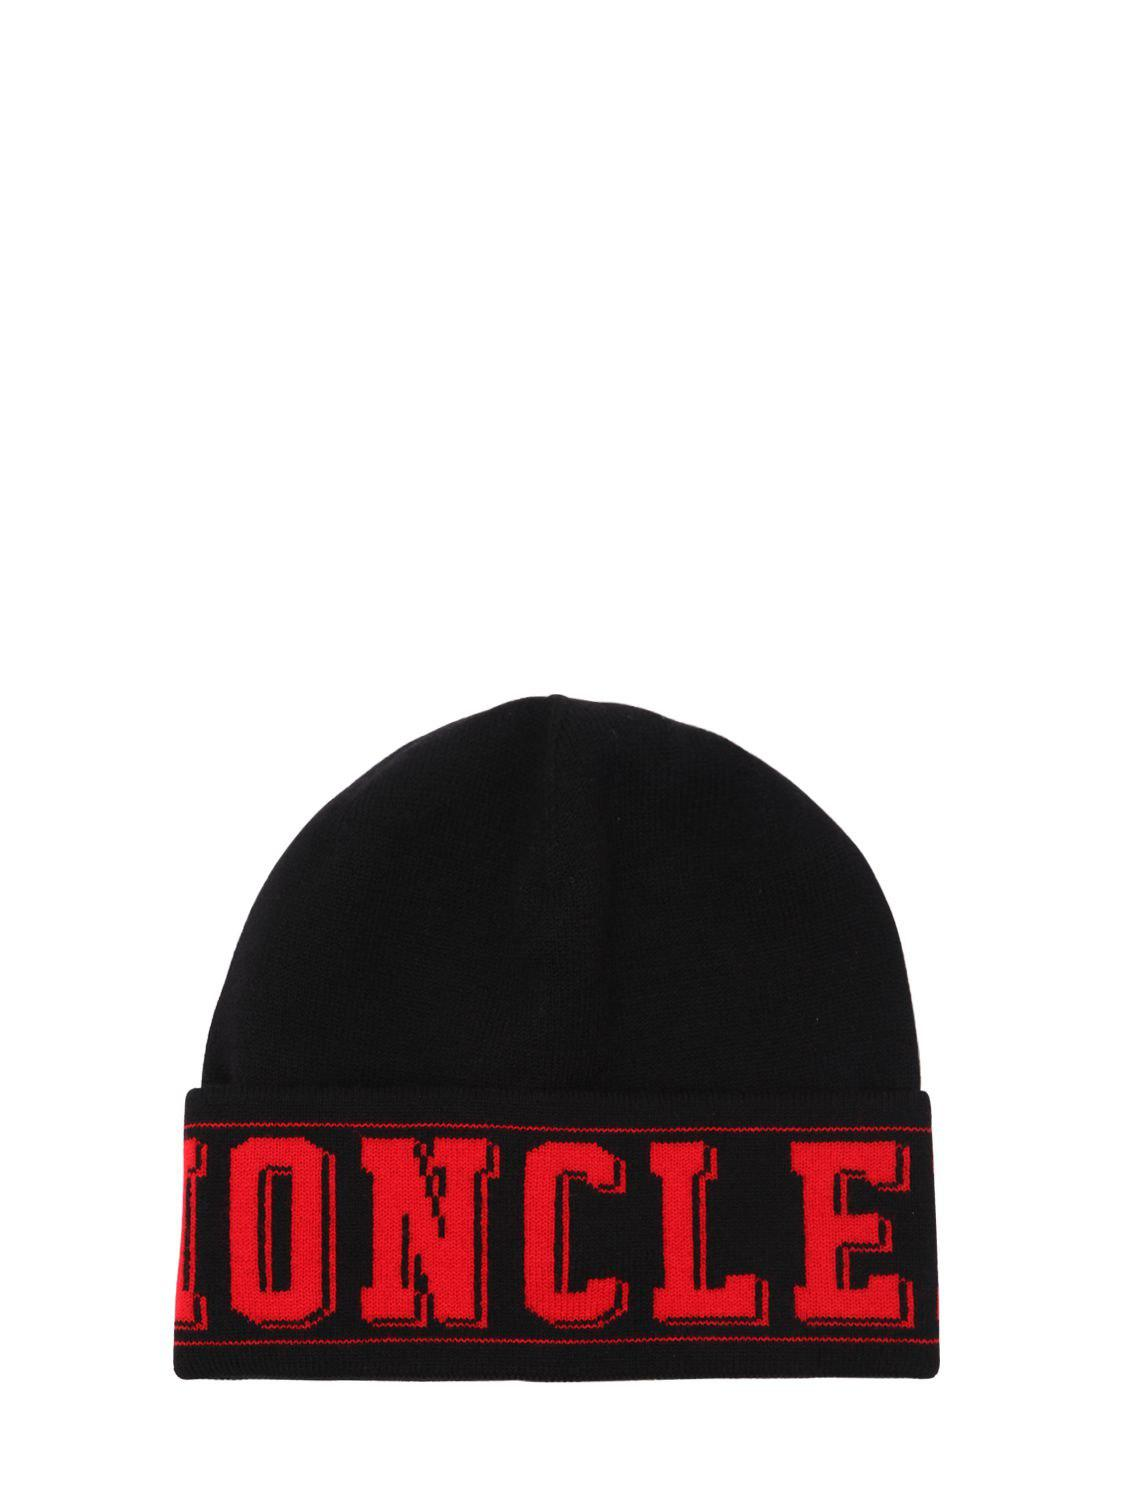 bc08a62a802 Lyst - Moncler Logo Knit Beanie Hat in Black for Men